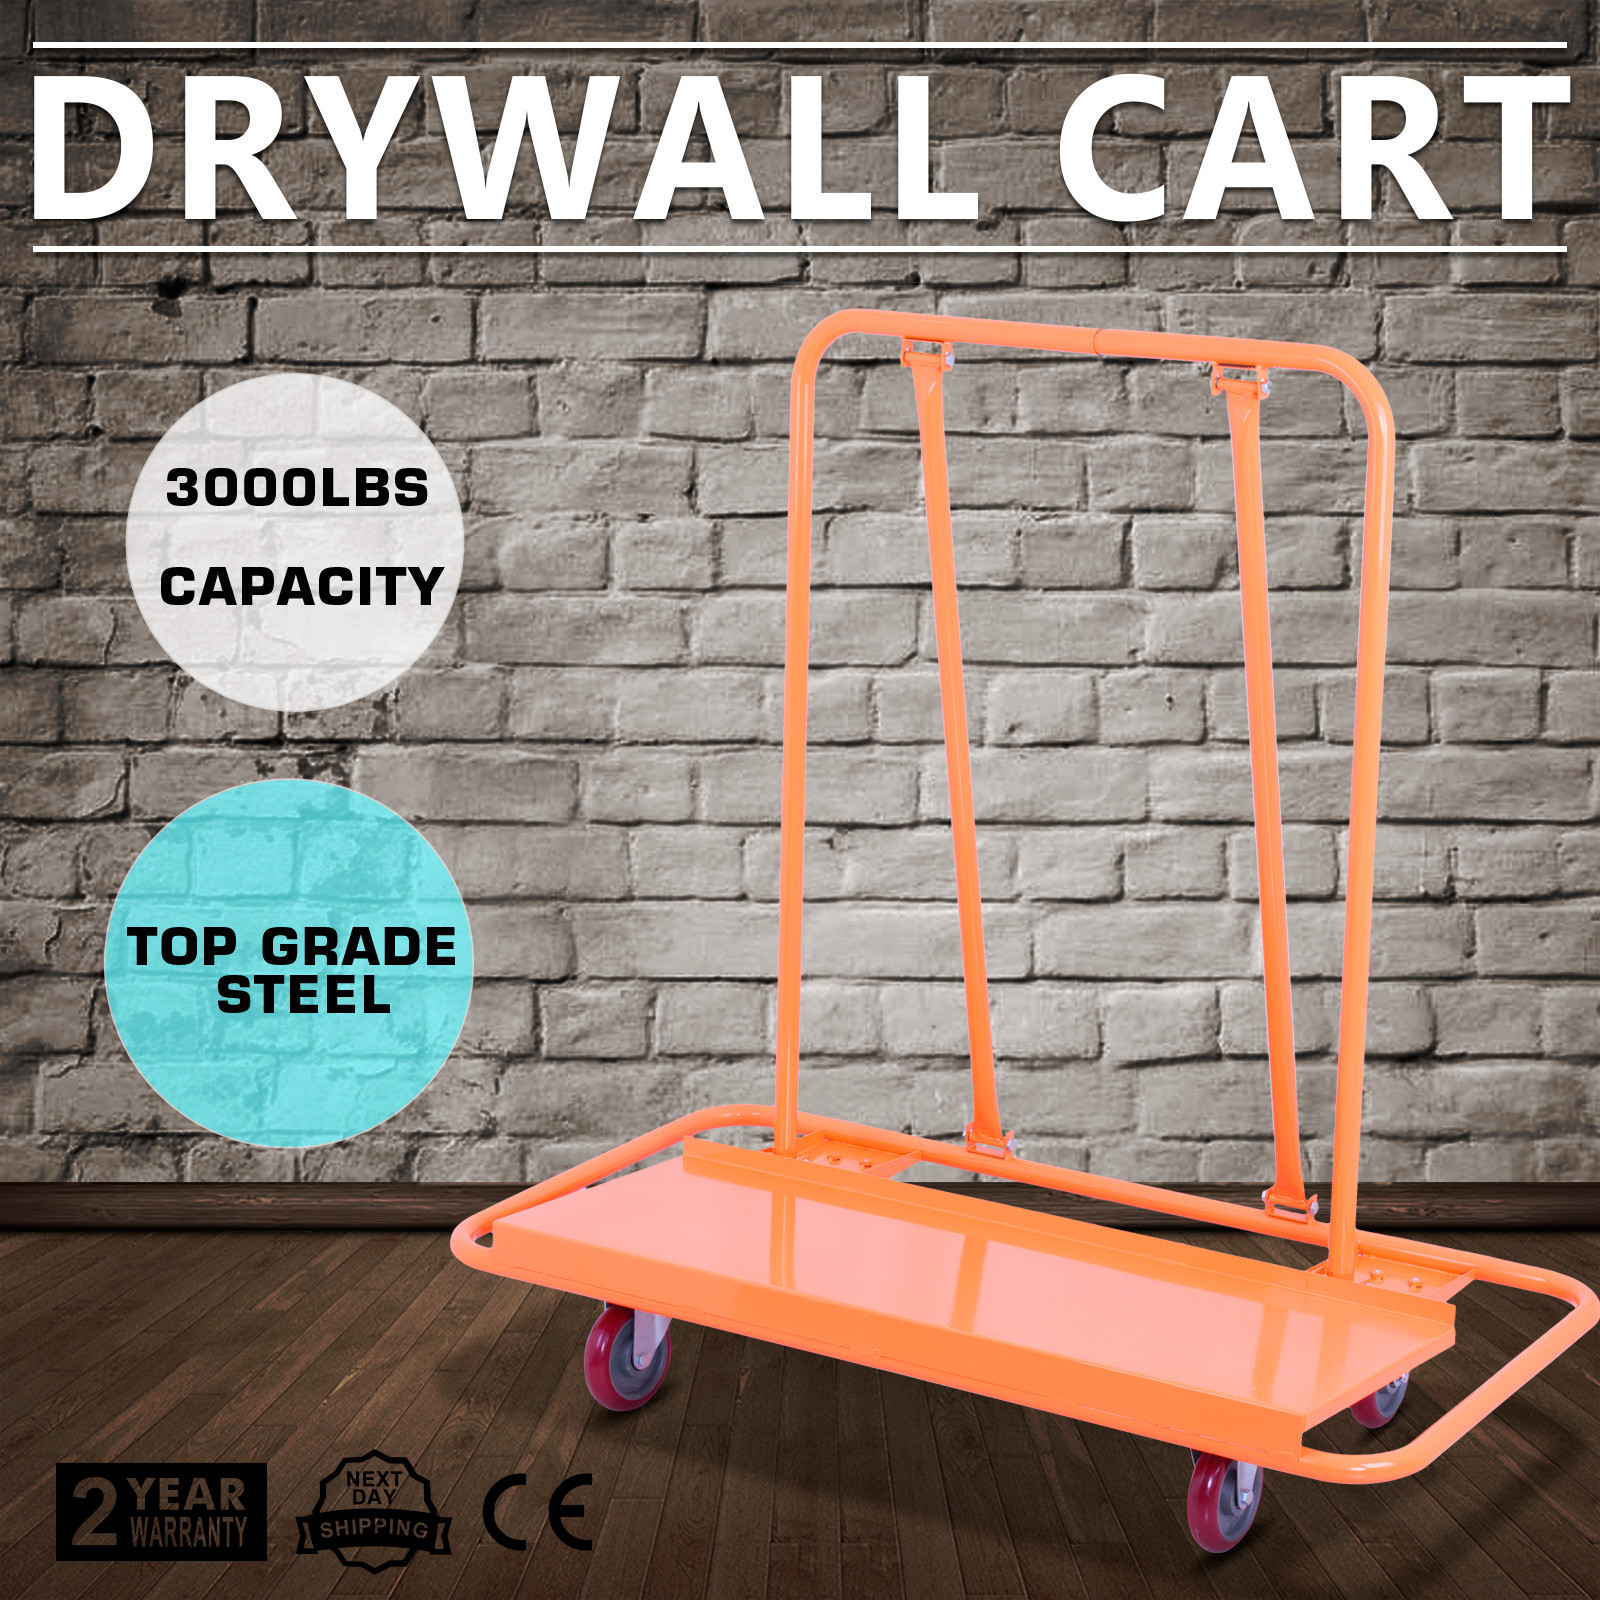 Drywall Cart Plasterboard Wheeled Trolley 3000LB Handling Panel Heavy Duty - Hamburg, Deutschland - Drywall Cart Plasterboard Wheeled Trolley 3000LB Handling Panel Heavy Duty - Hamburg, Deutschland